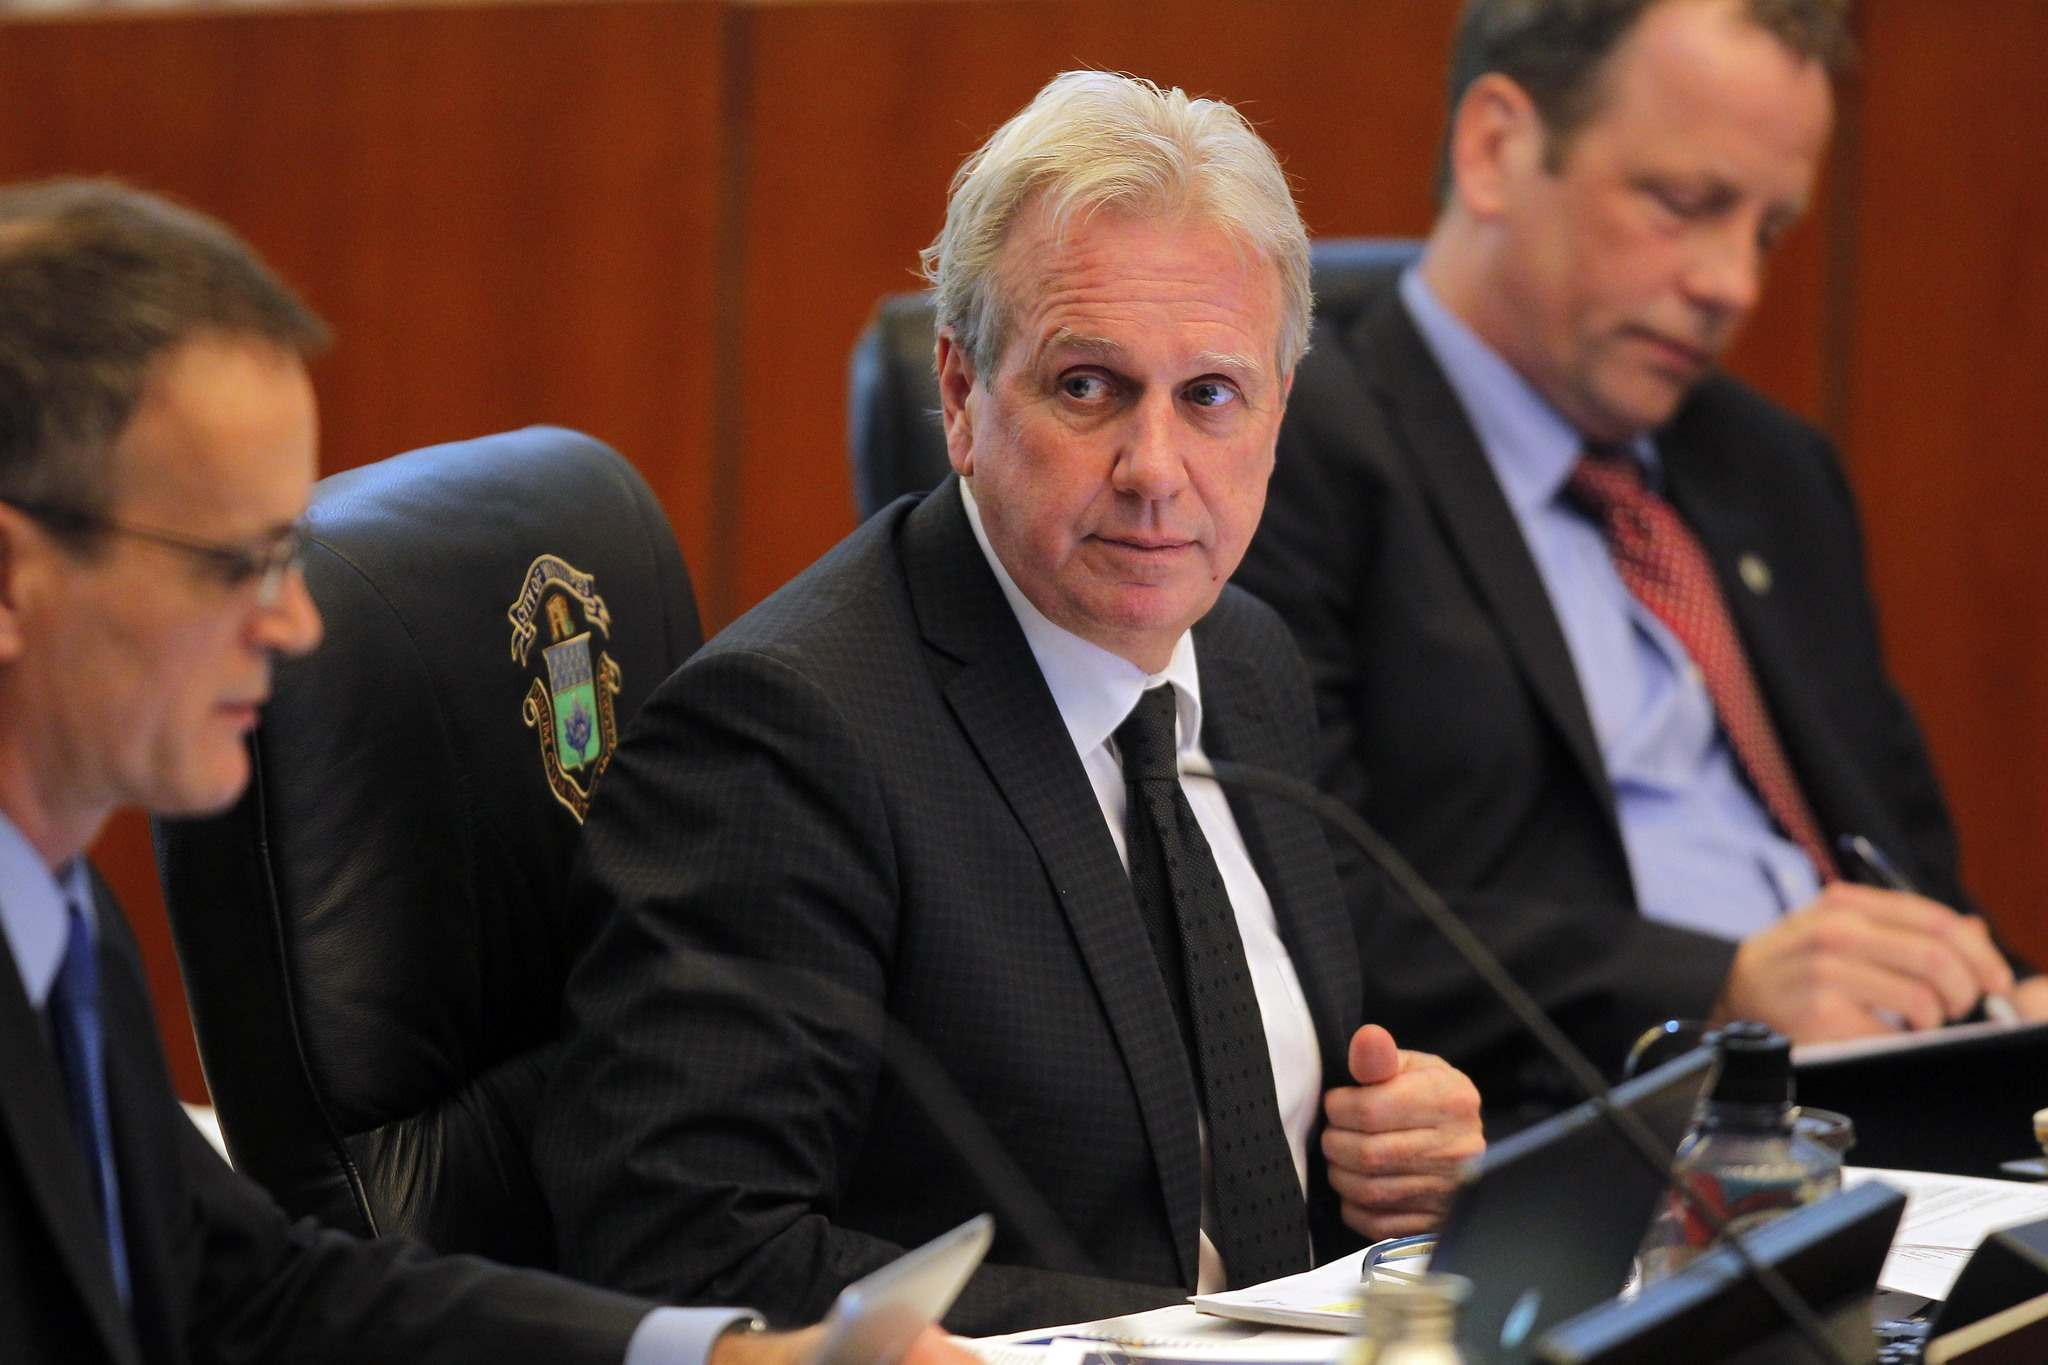 Planning, property and development department director John Kiernan (centre) says his investigation team isn't satisfied with some of the answers provided by city staff. (Boris Minkevich / Winnipeg Free Press files)</p>